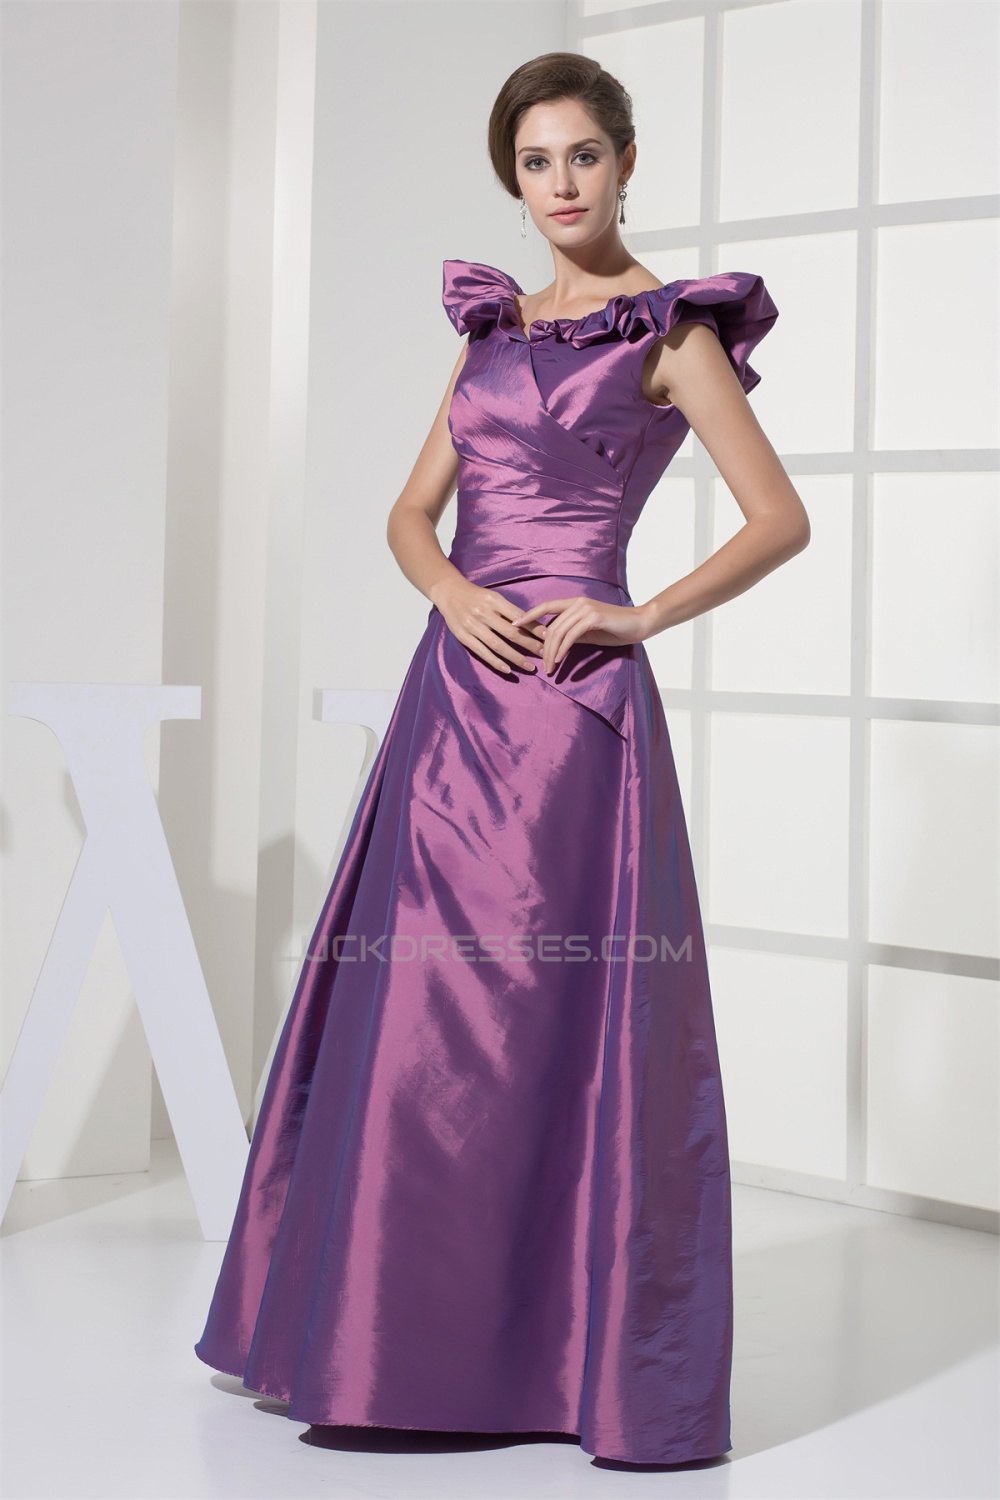 FloorLength Satin Taffeta Sleeveless ALine PromFormal